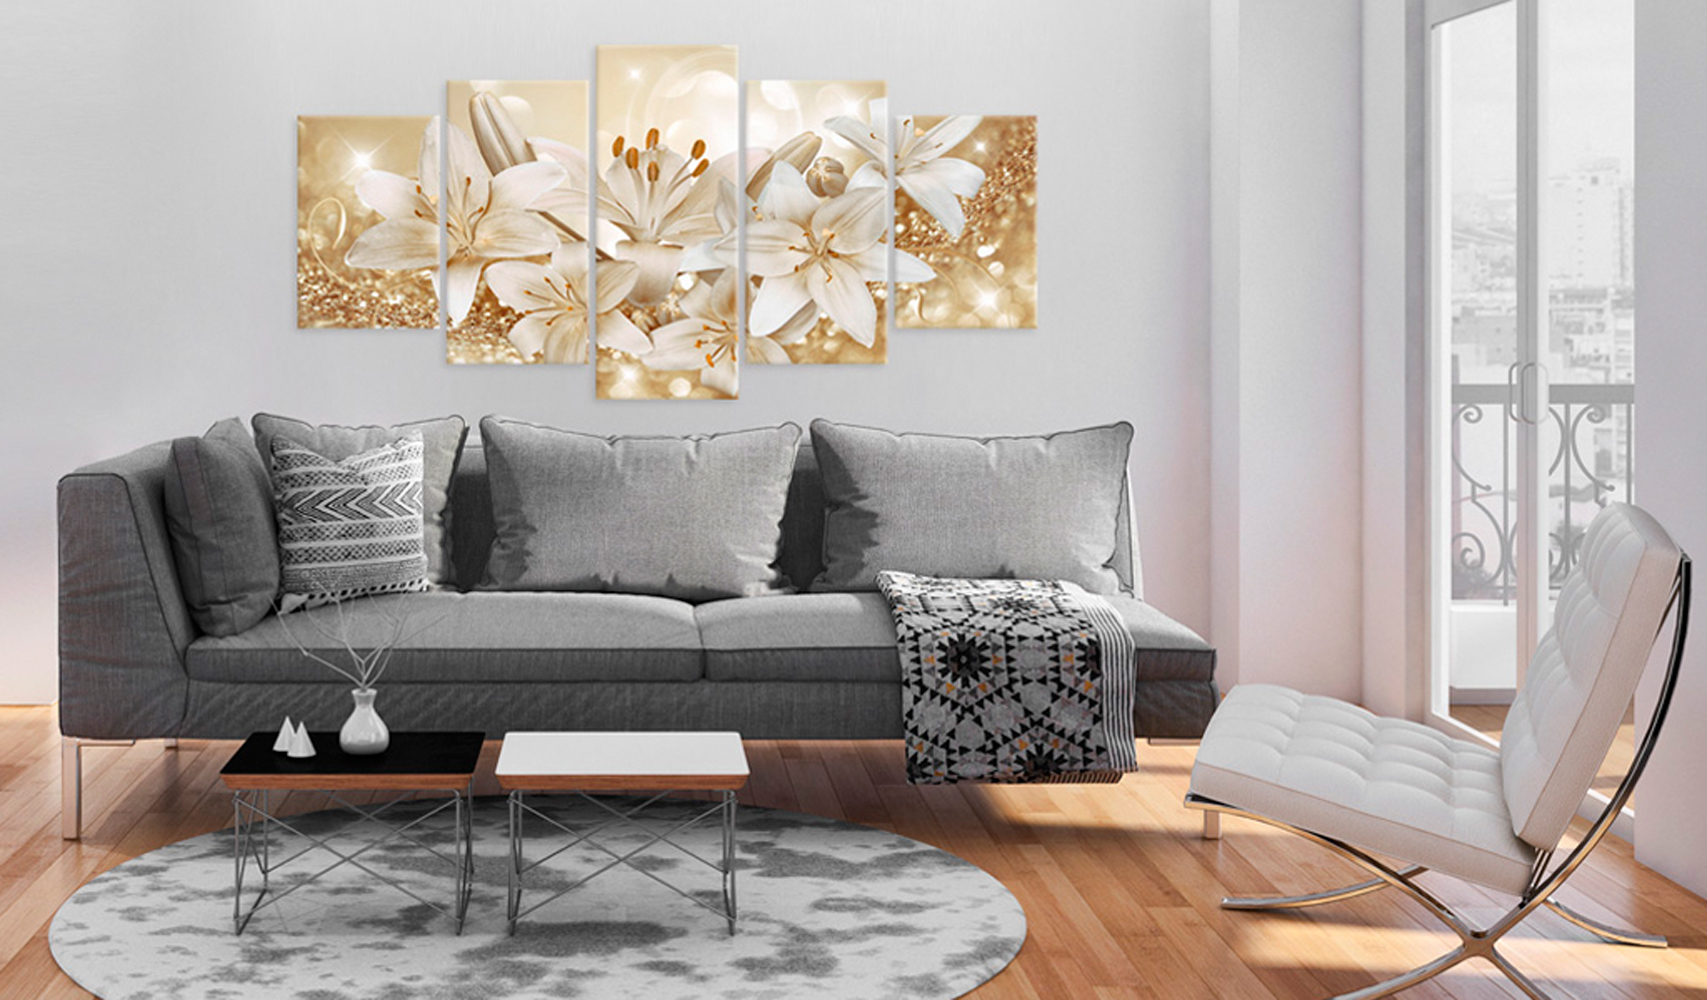 5 Panel Wall Pictures for Living Room Picture Print Painting On Canvas Wall Art Home Decor Living Room Canvas Print PJMT B 543 in Painting Calligraphy from Home Garden